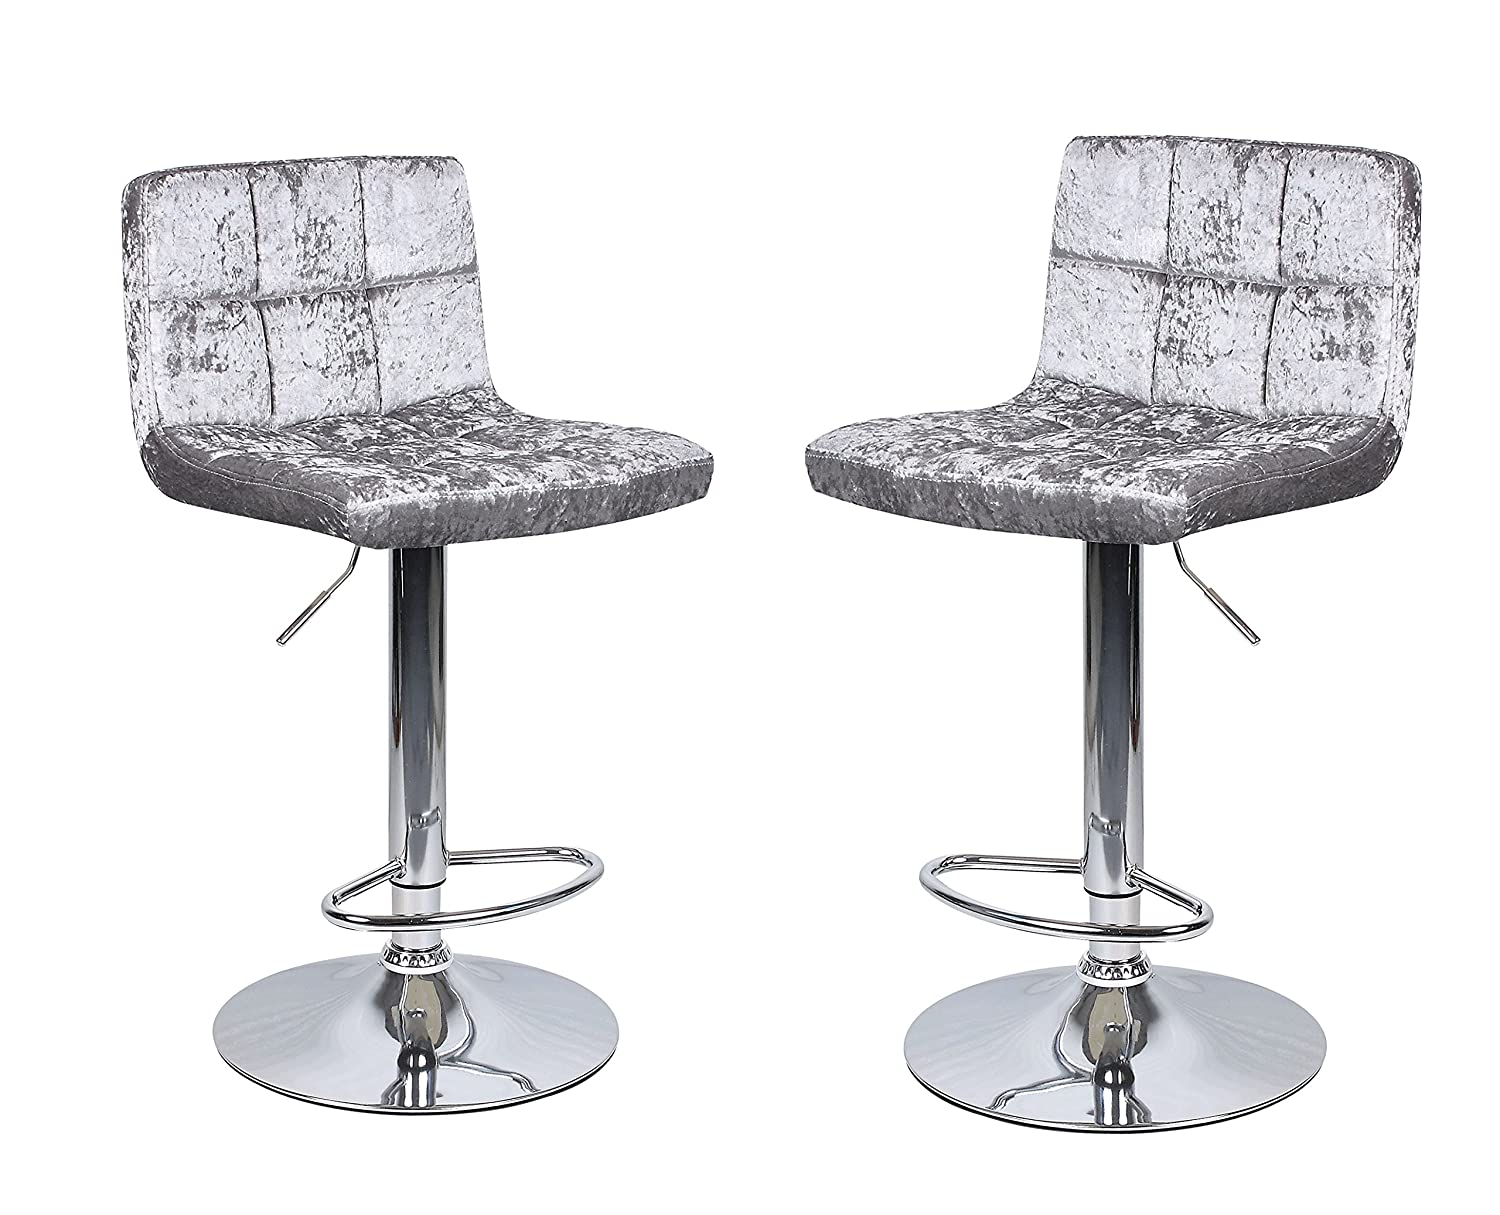 2 x Crushed Velvet Silver Breakfast Bar Stool Kitchen Barstools Dining Office Chair HispUK